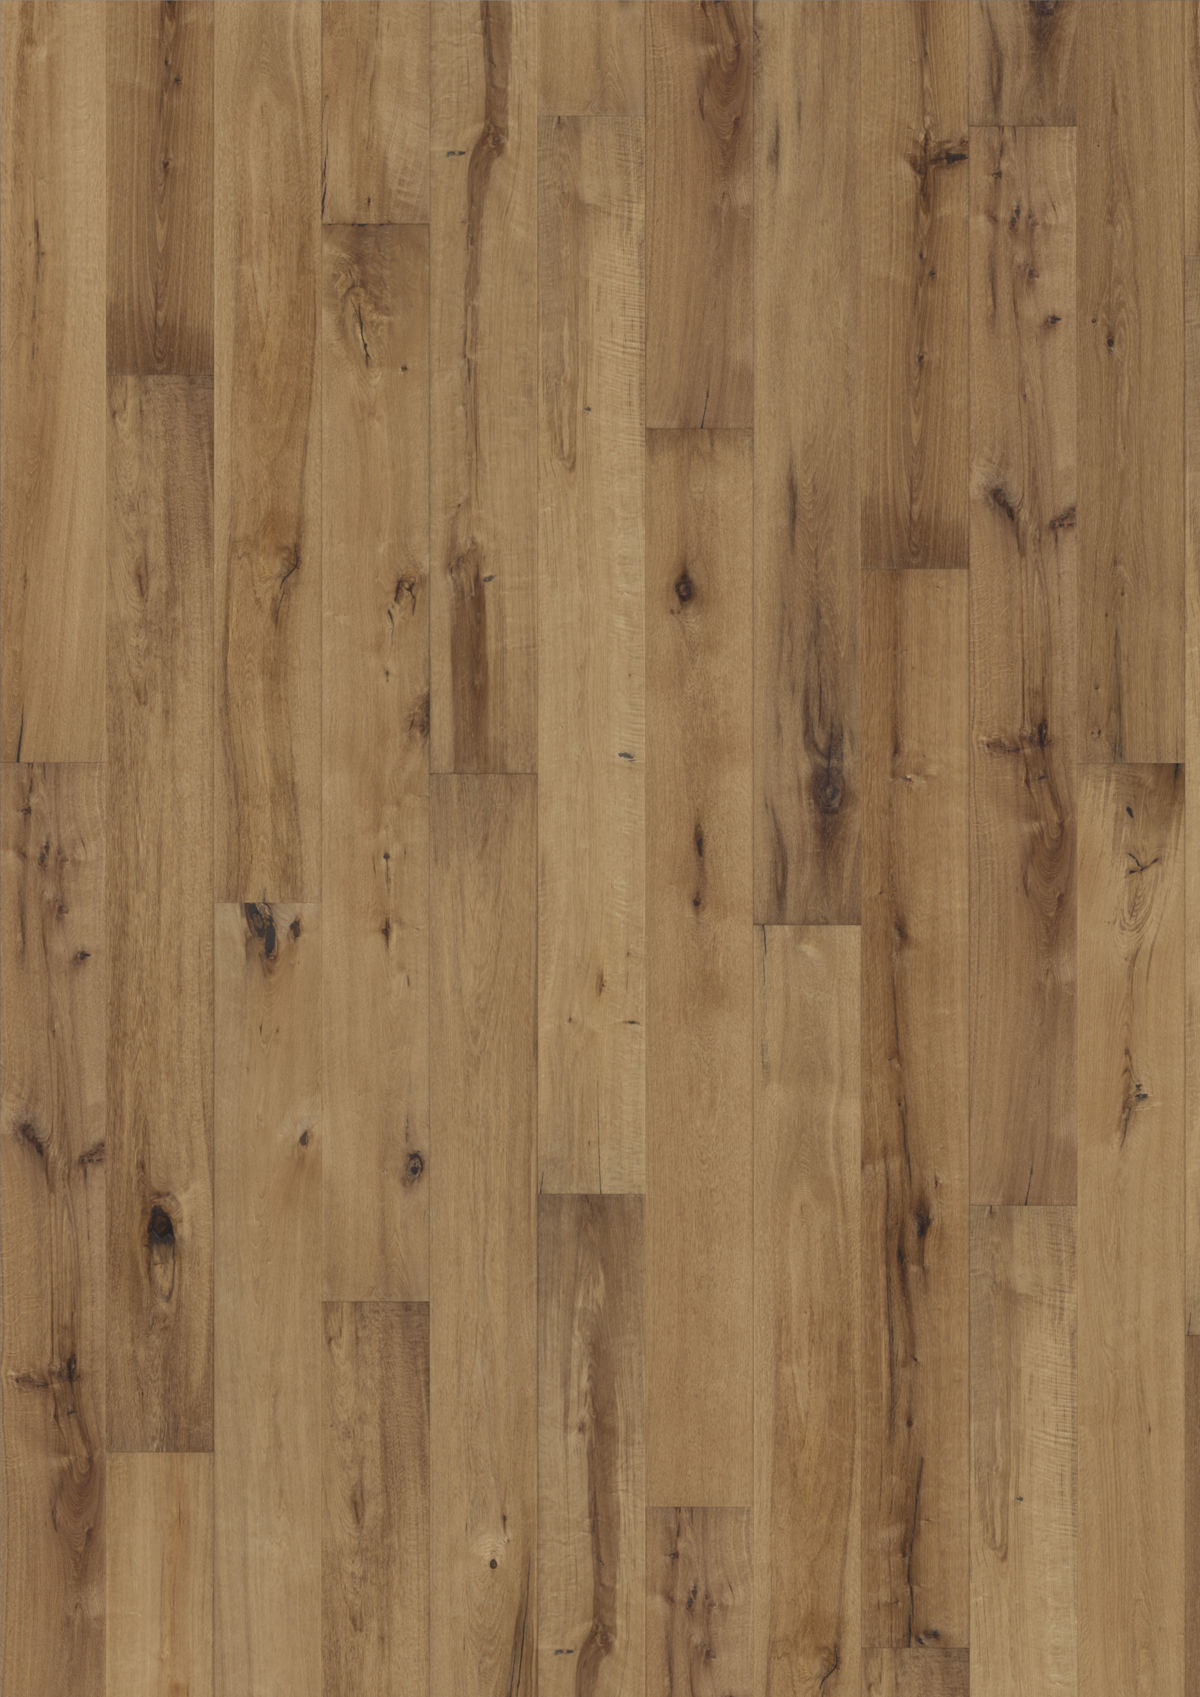 Kahrs Artisan Oak Straw Engineered Wood Flooring